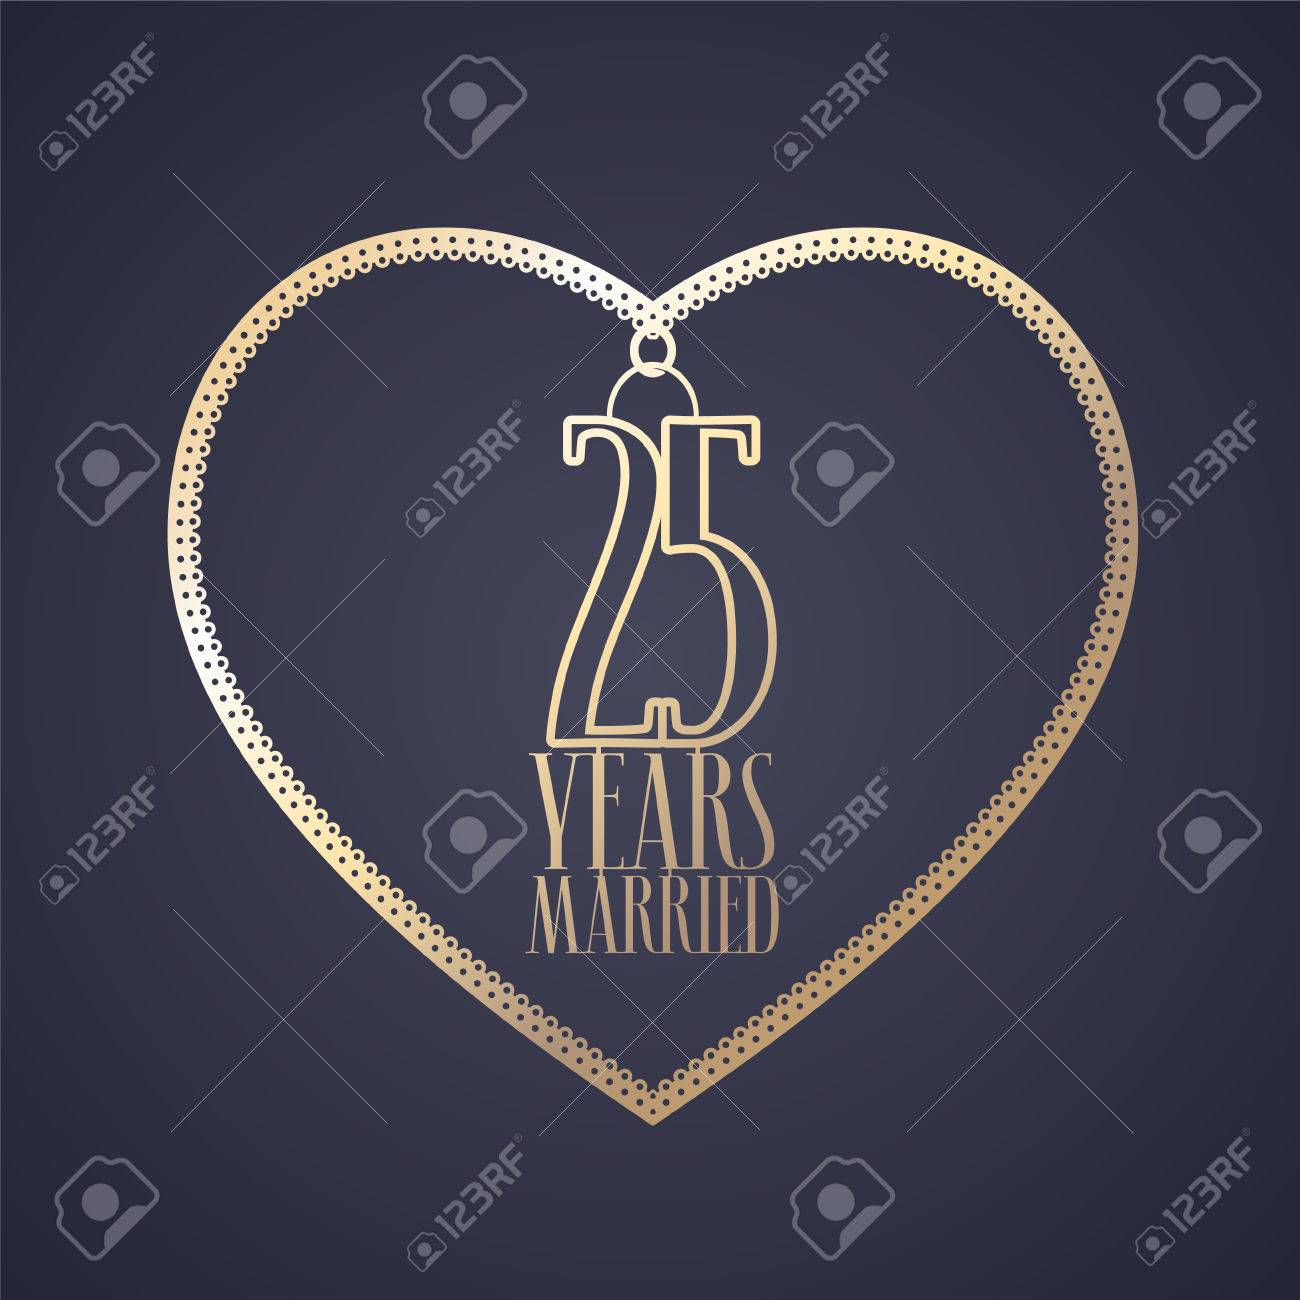 25 years anniversary of being married vector icon, logo. Graphic design element with golden color heart for decoration for 25th anniversary wedding - 81799109